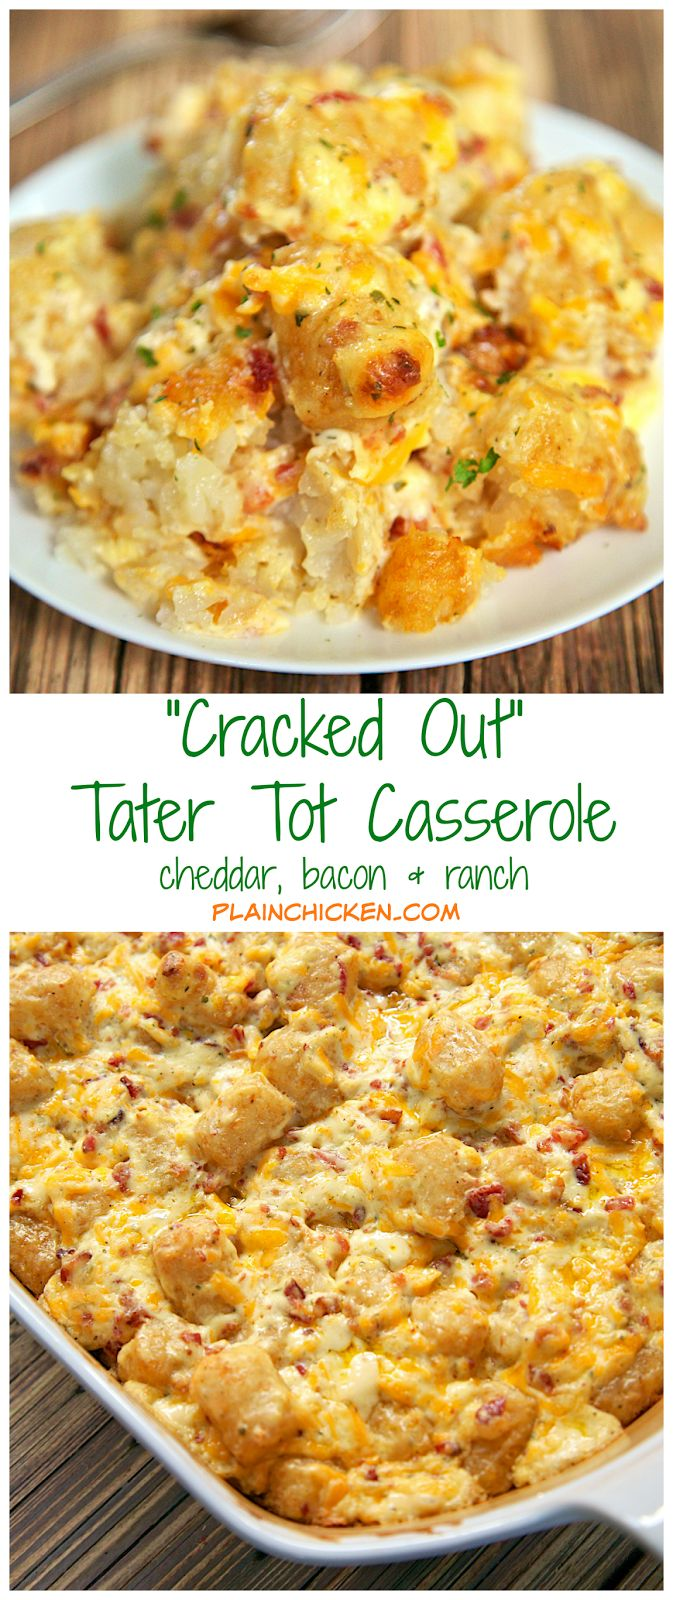 """Cracked Out"" Tater Tot Casserole"